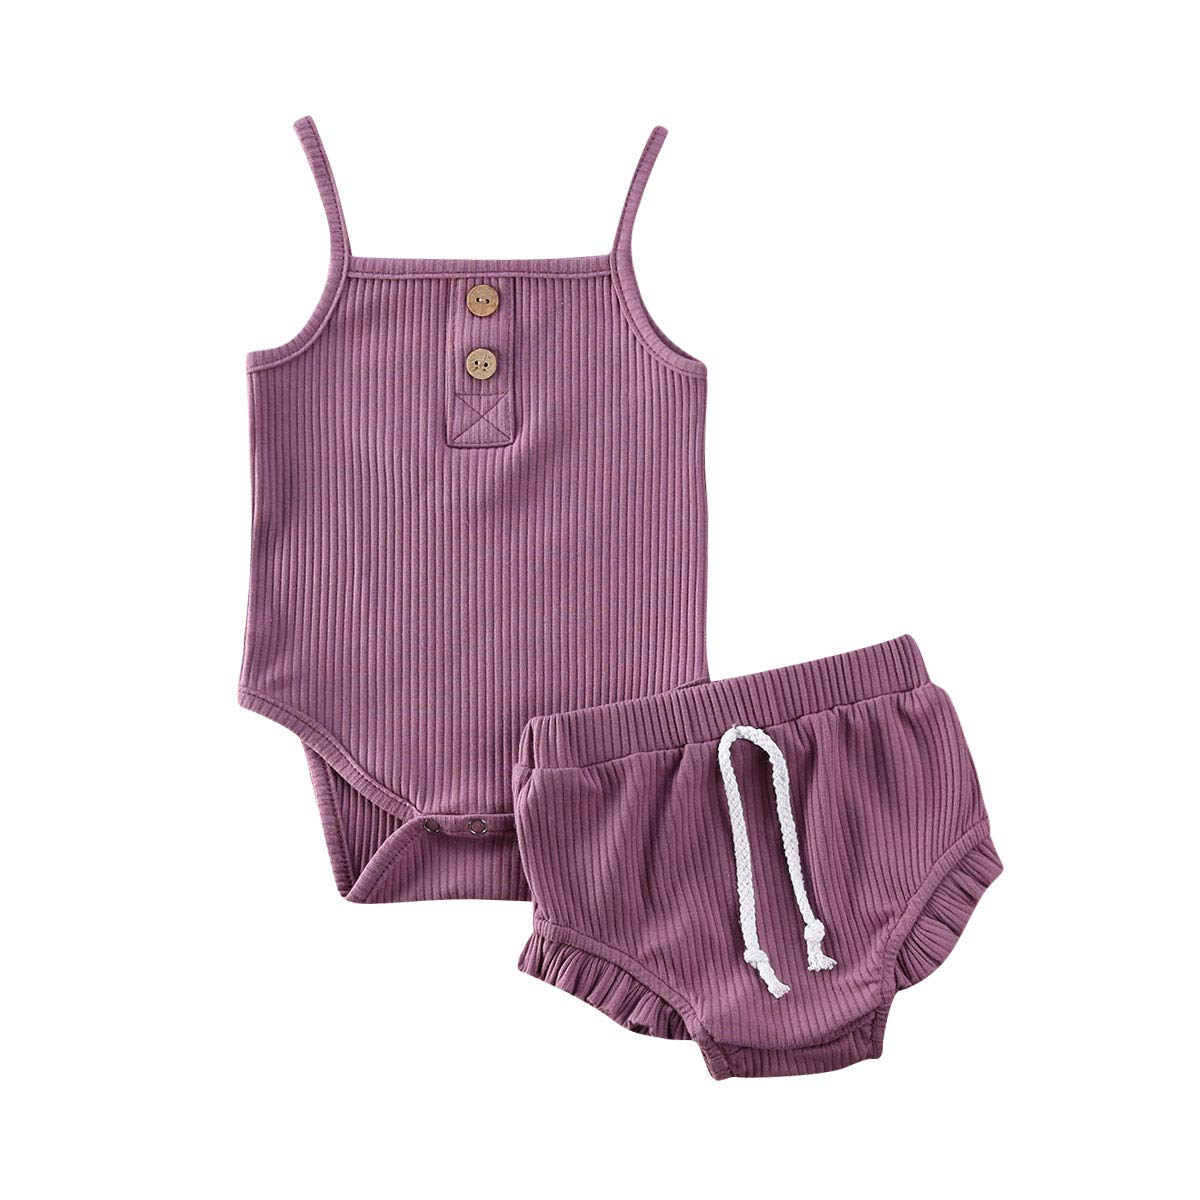 Infant Baby Girls Summer Knit Outfits Button Halter Romper Ruffle Drawstring Shorts Pants 2Pcs Clothes Sets